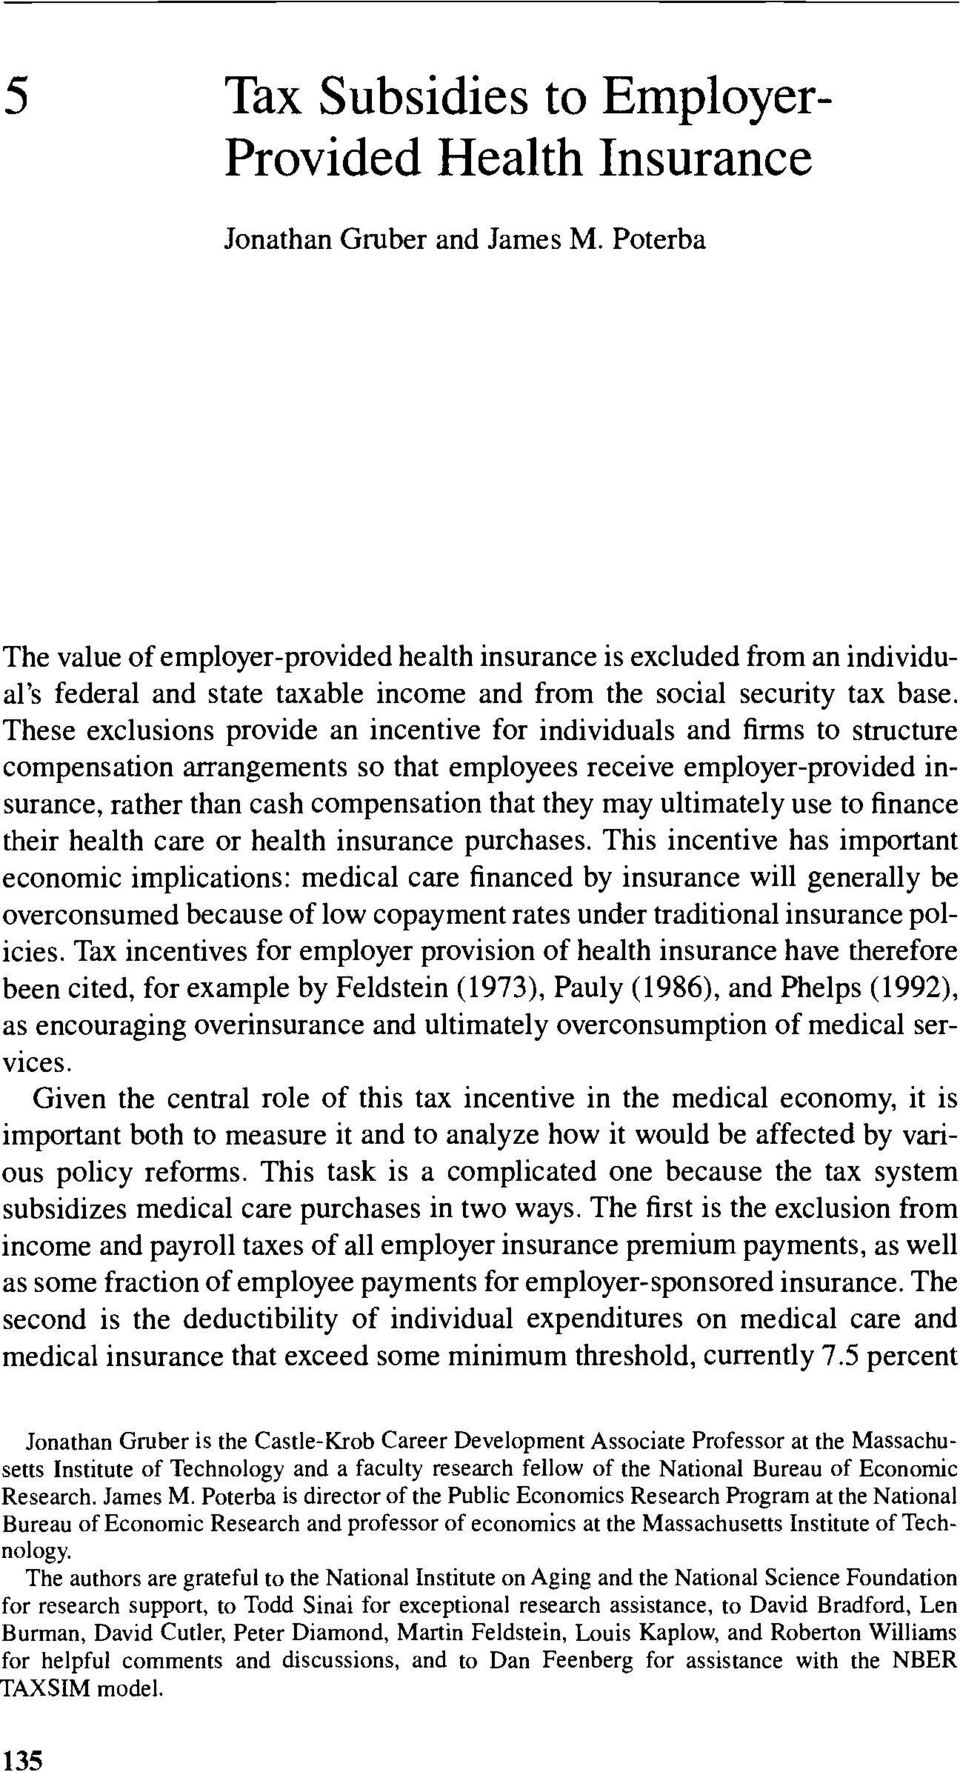 These exclusions provide an incentive for individuals and firms to structure compensation arrangements so that employees receive employer-provided insurance, rather than cash compensation that they